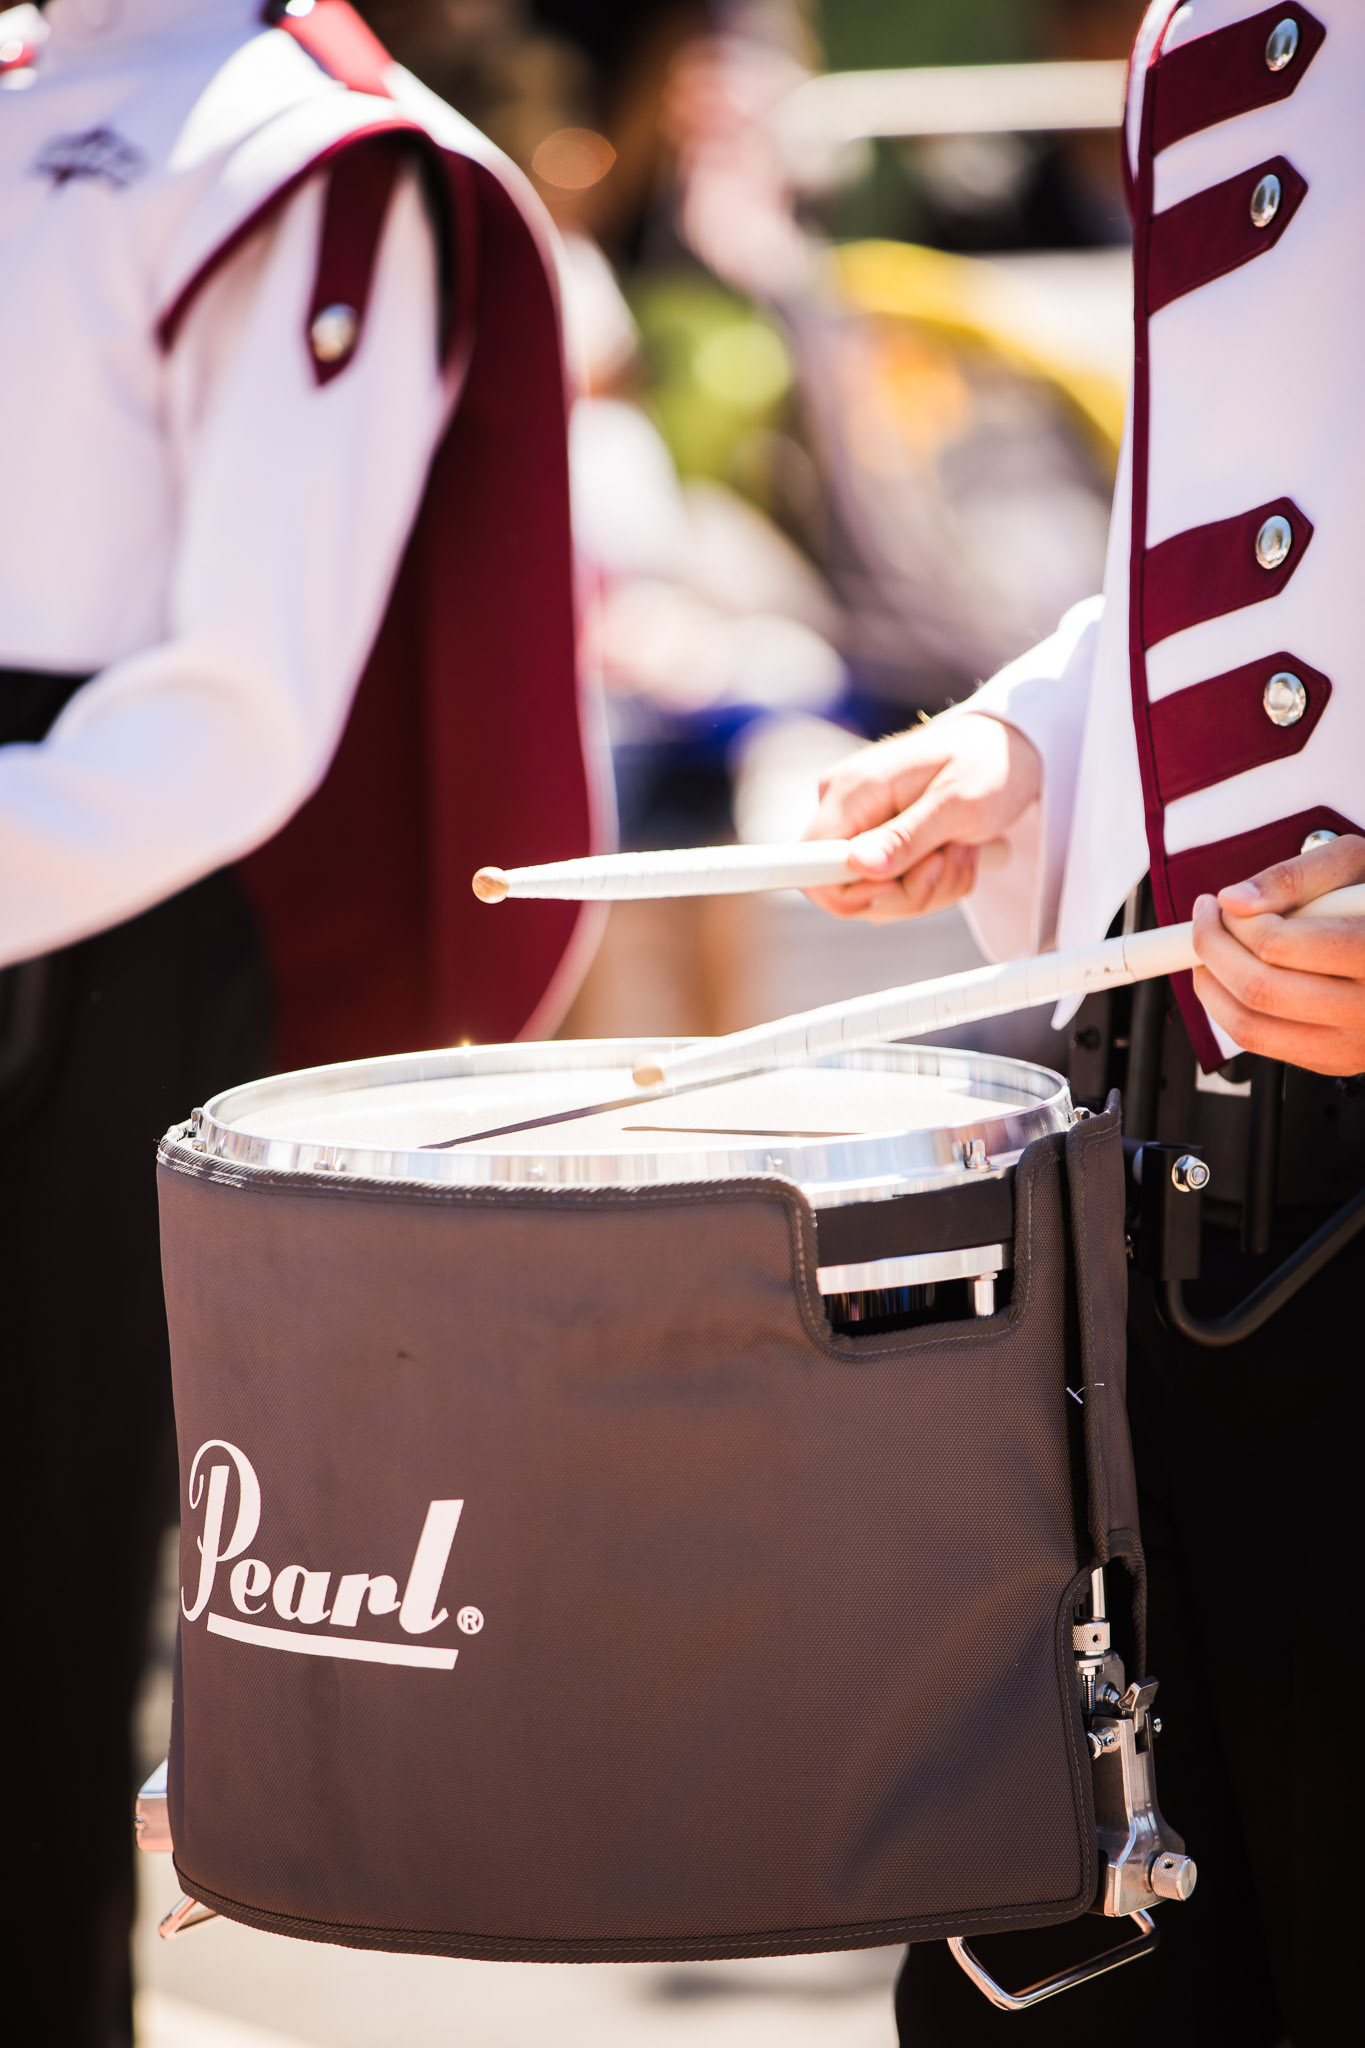 Archer_Inspired_Photography_Morgan_Hill_California_4th_of_july_parade-147.jpg